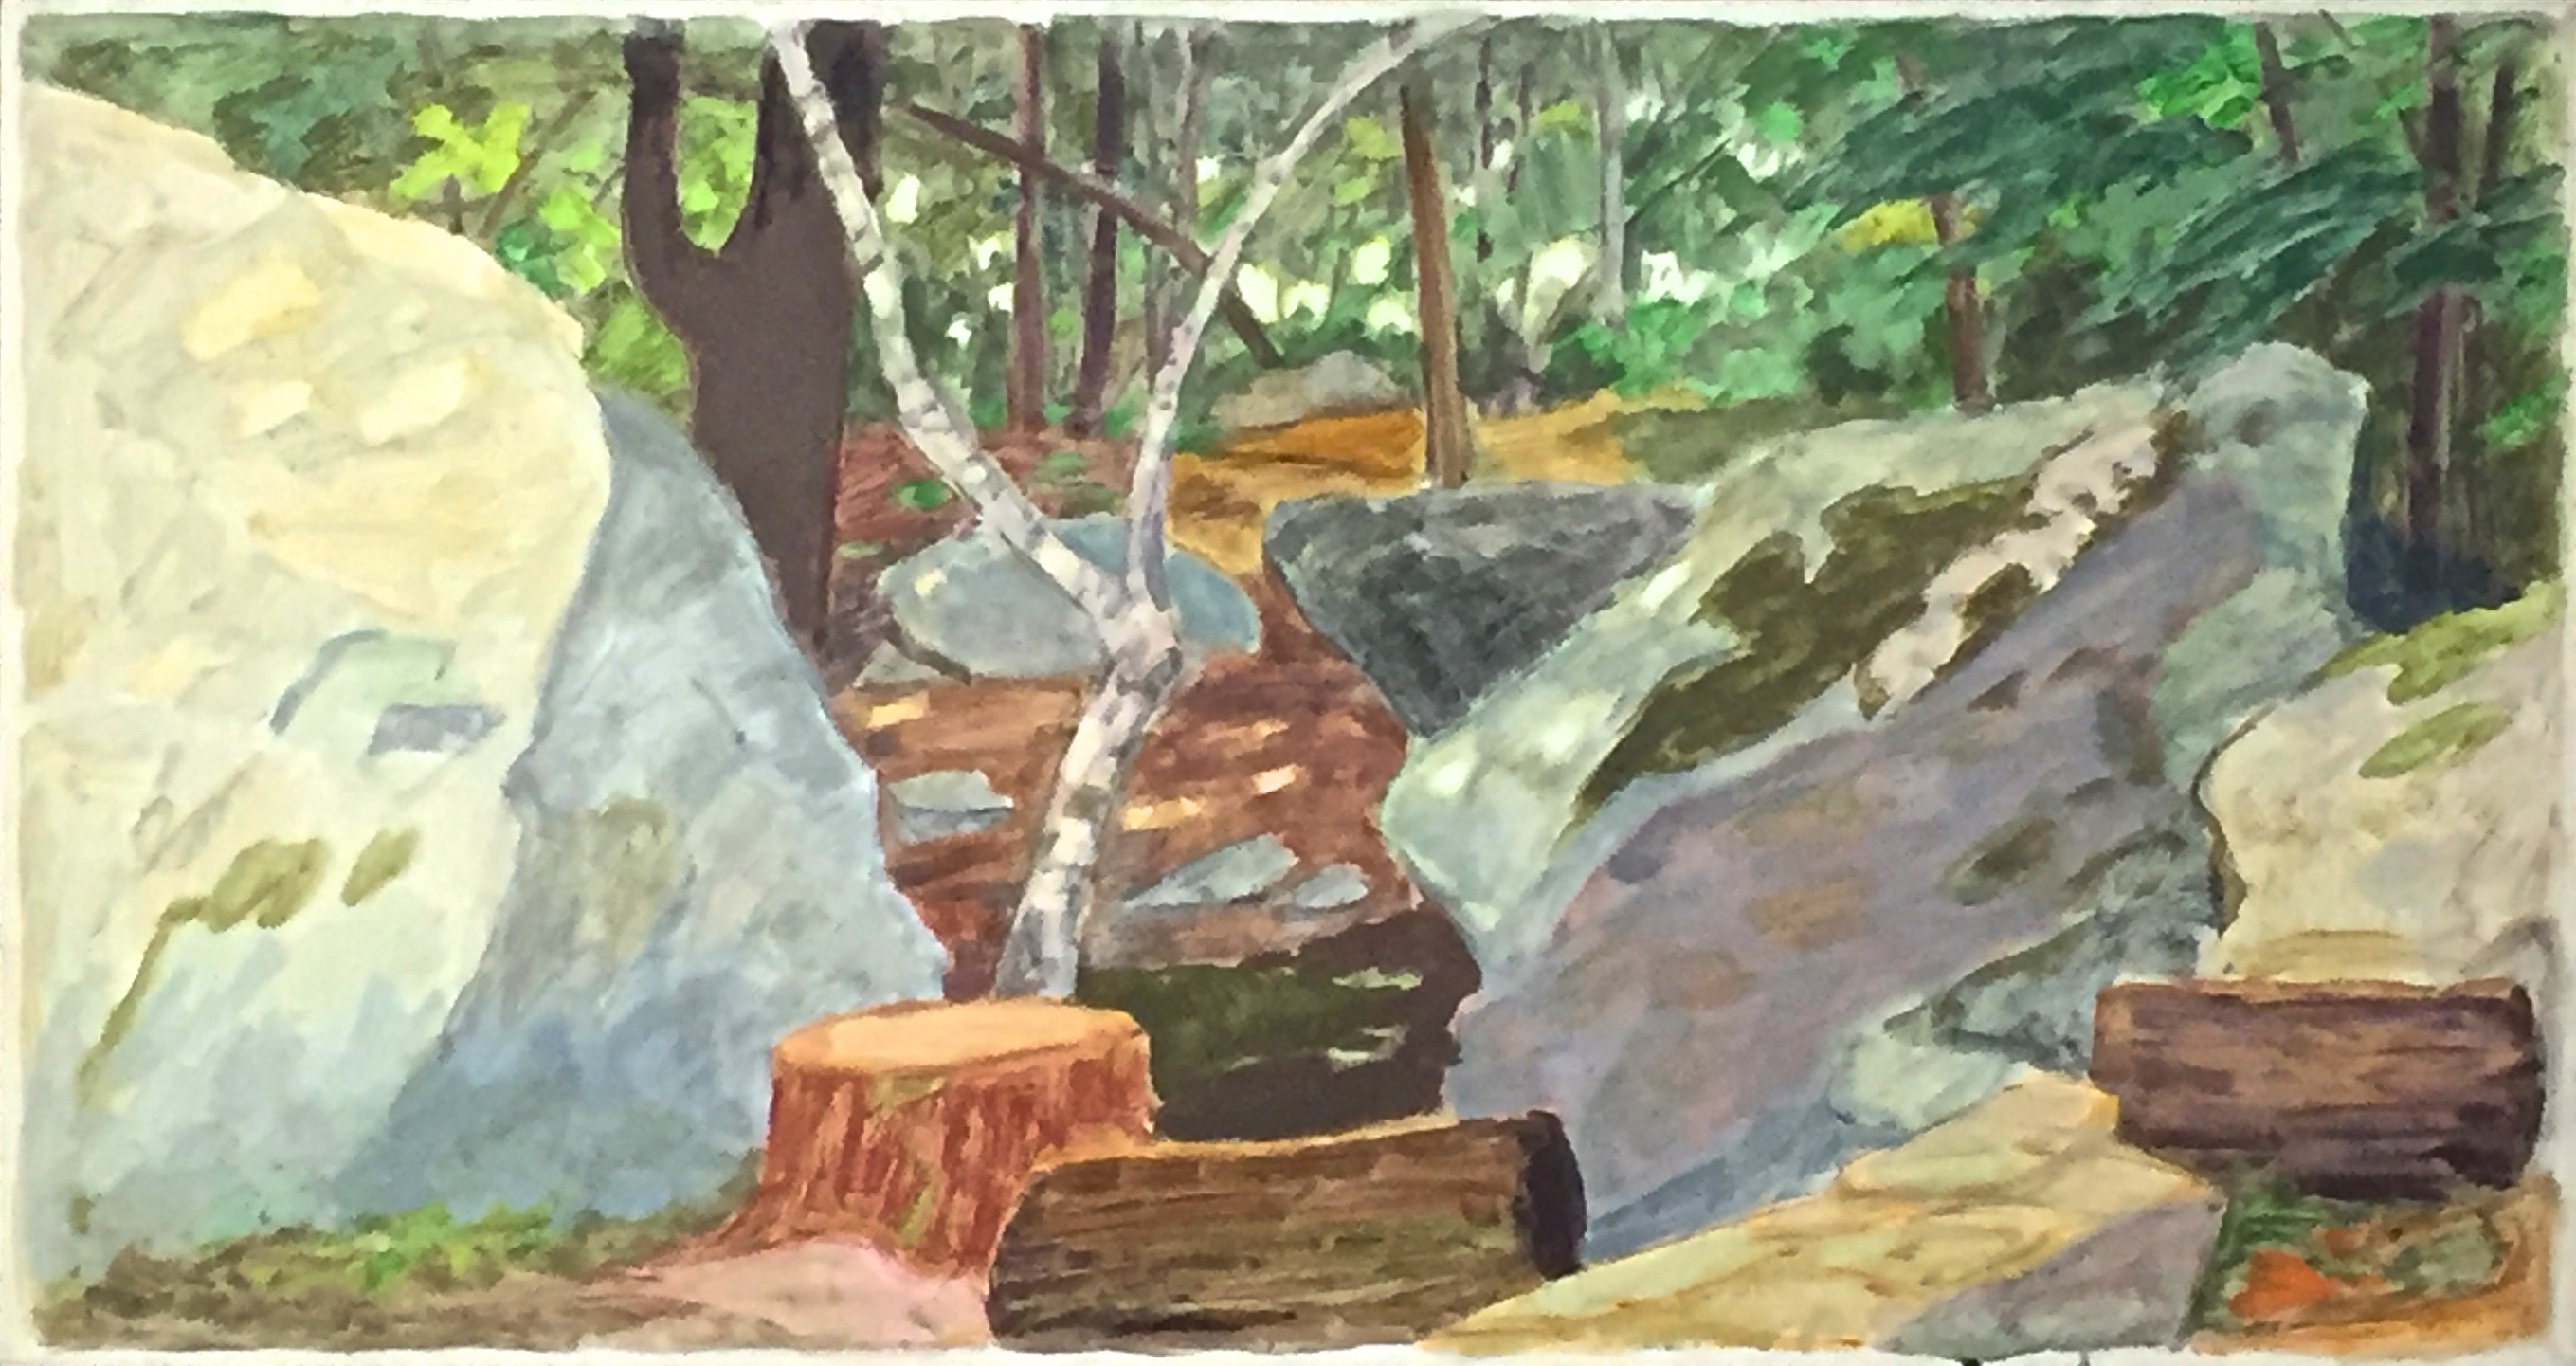 Large Boulders in Woods